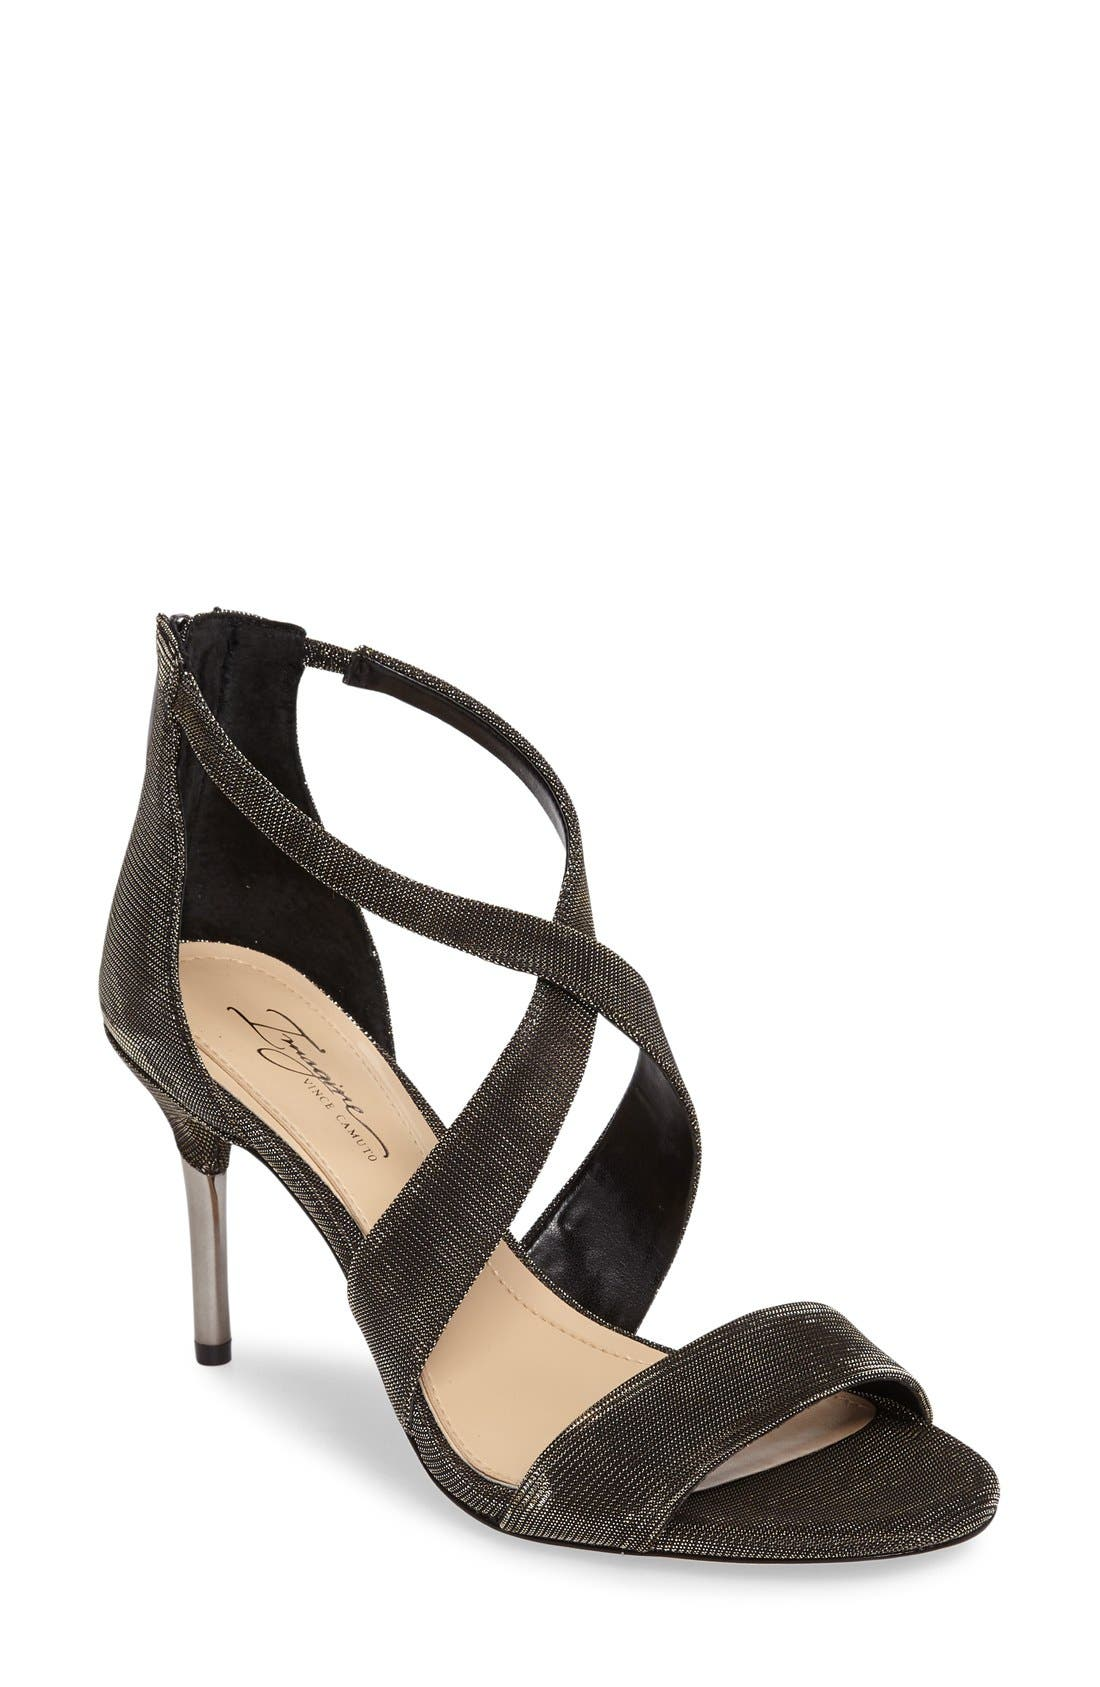 IMAGINE BY VINCE CAMUTO Pascal Sandal